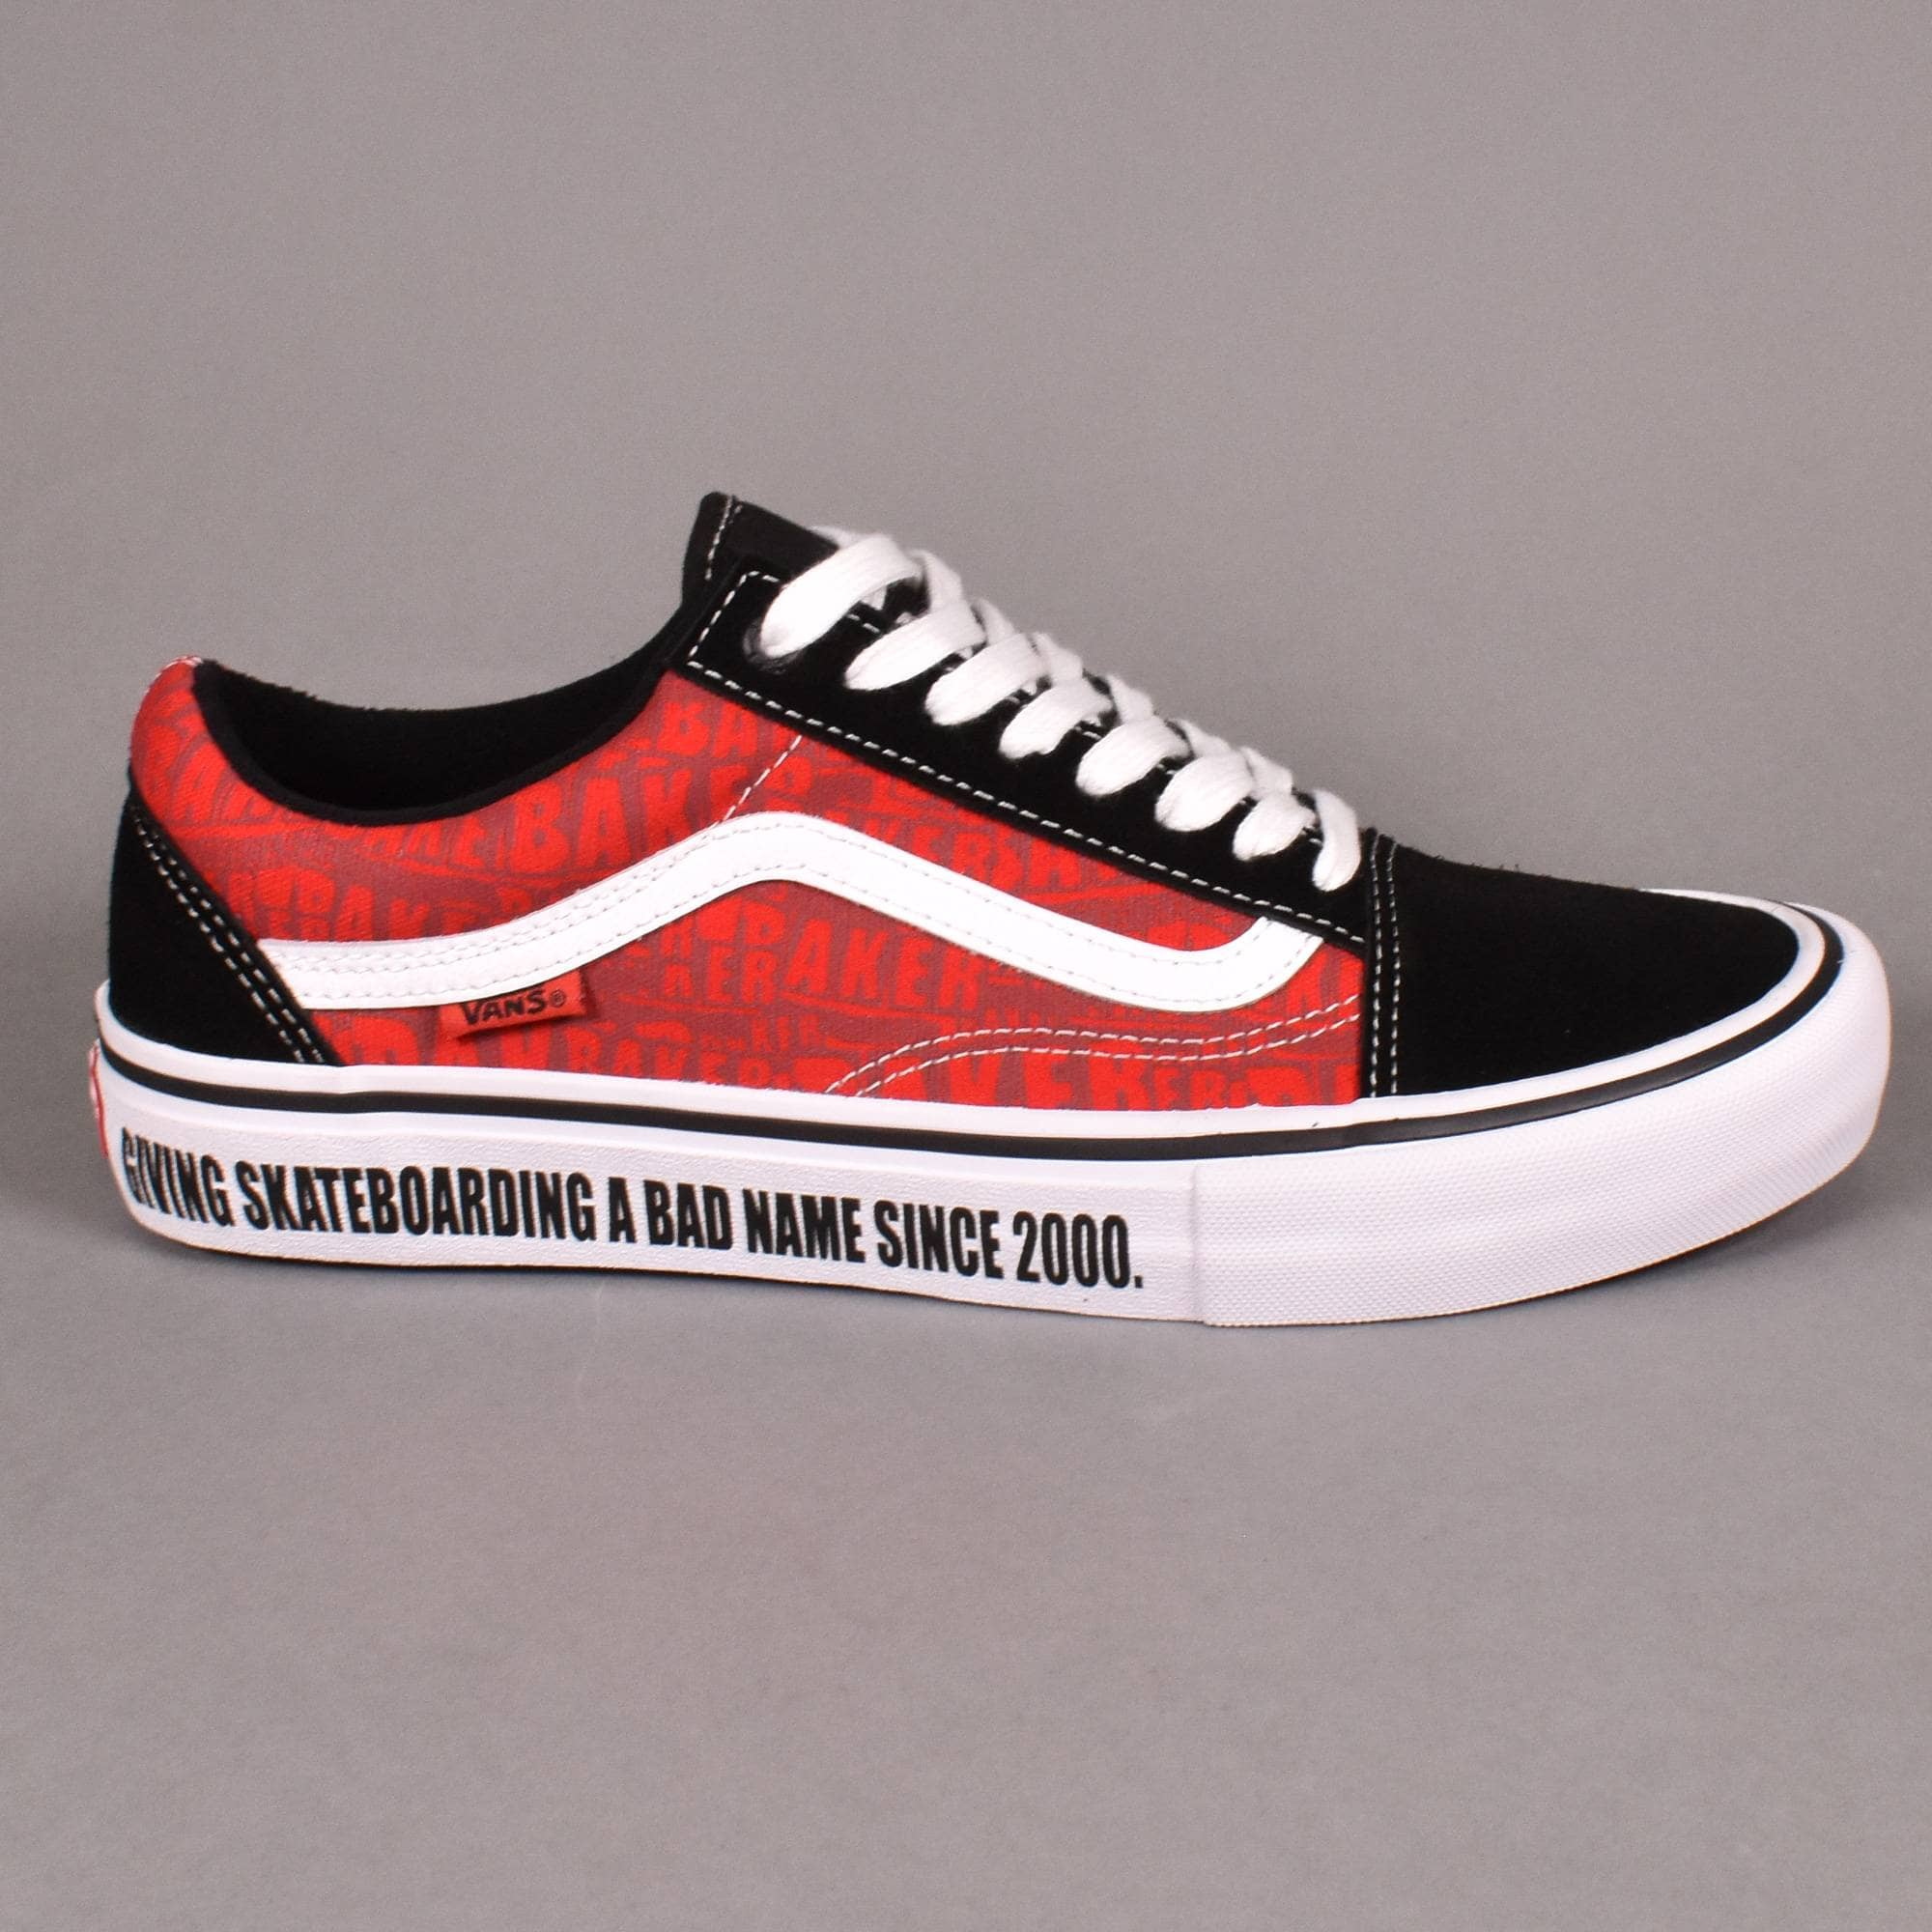 Vans x Baker Old Skool Pro Skate Shoes - Black/White/Red